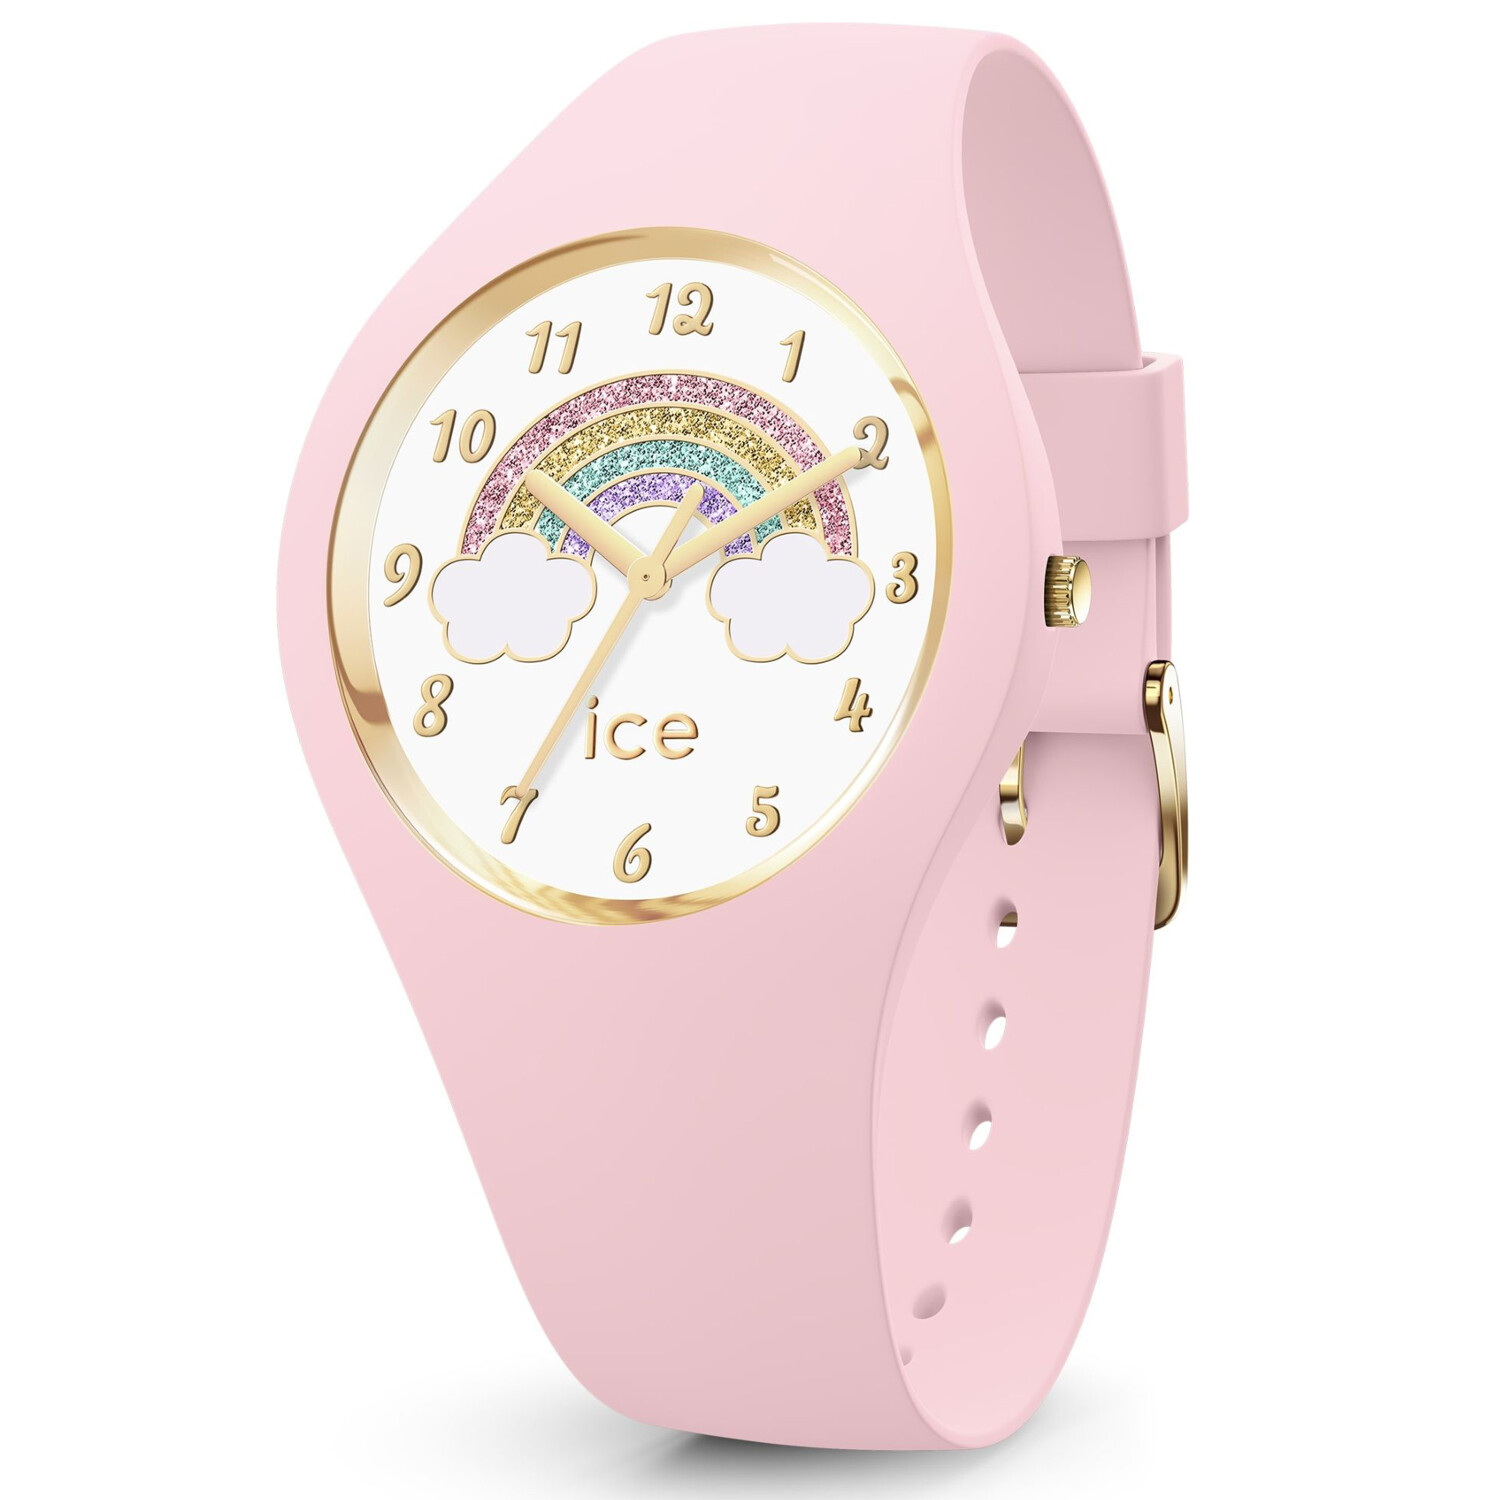 Ice-Watch Girl's Fantasia 017890 Pink Silicone Quartz Fashion Watch